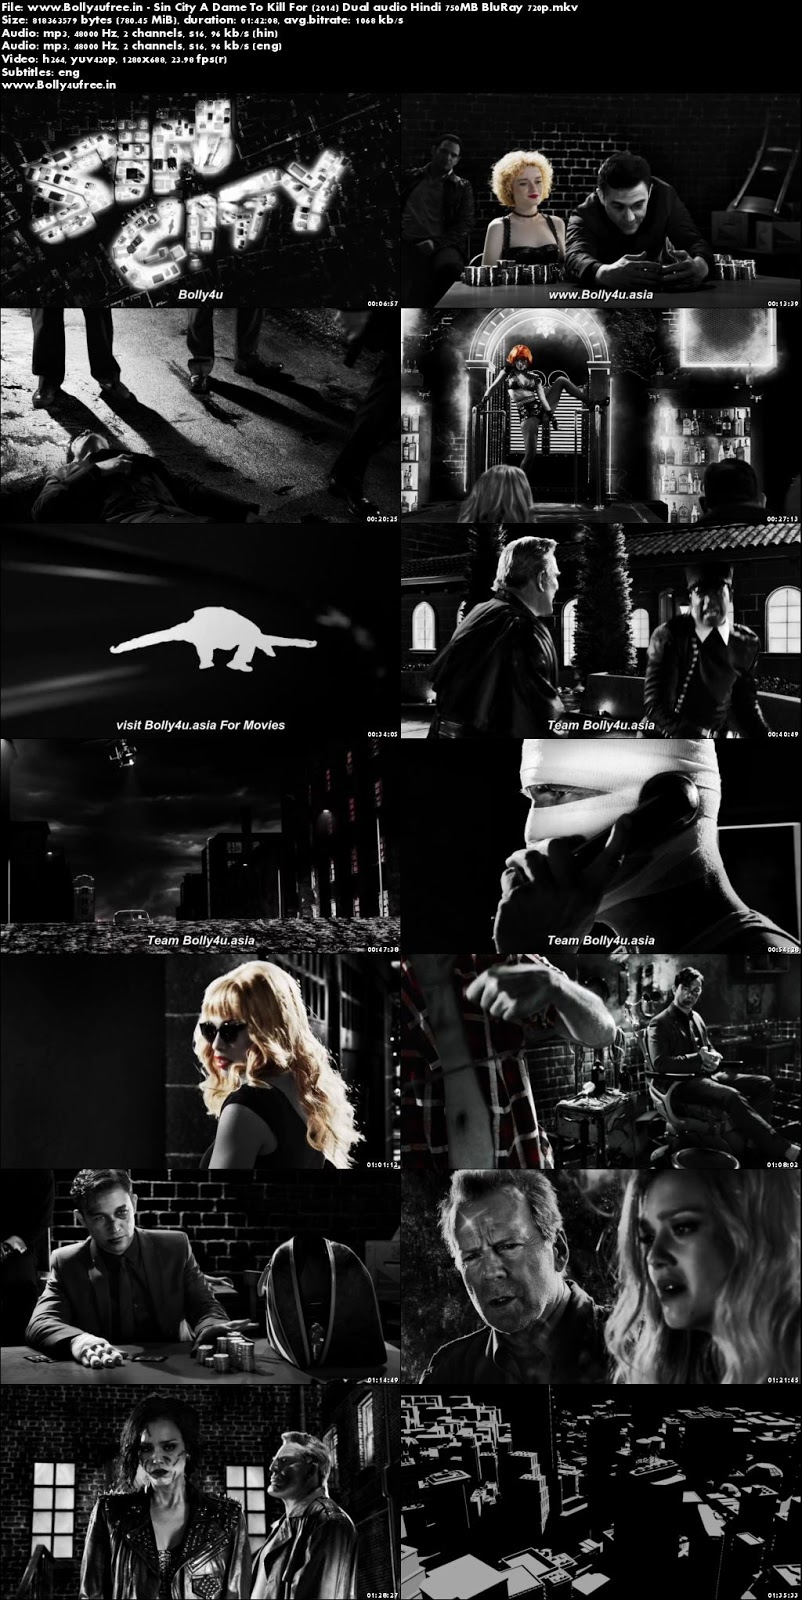 Sin City A Dame To Kill For 2014 Hindi Dual Audio 750MB BluRay 720p